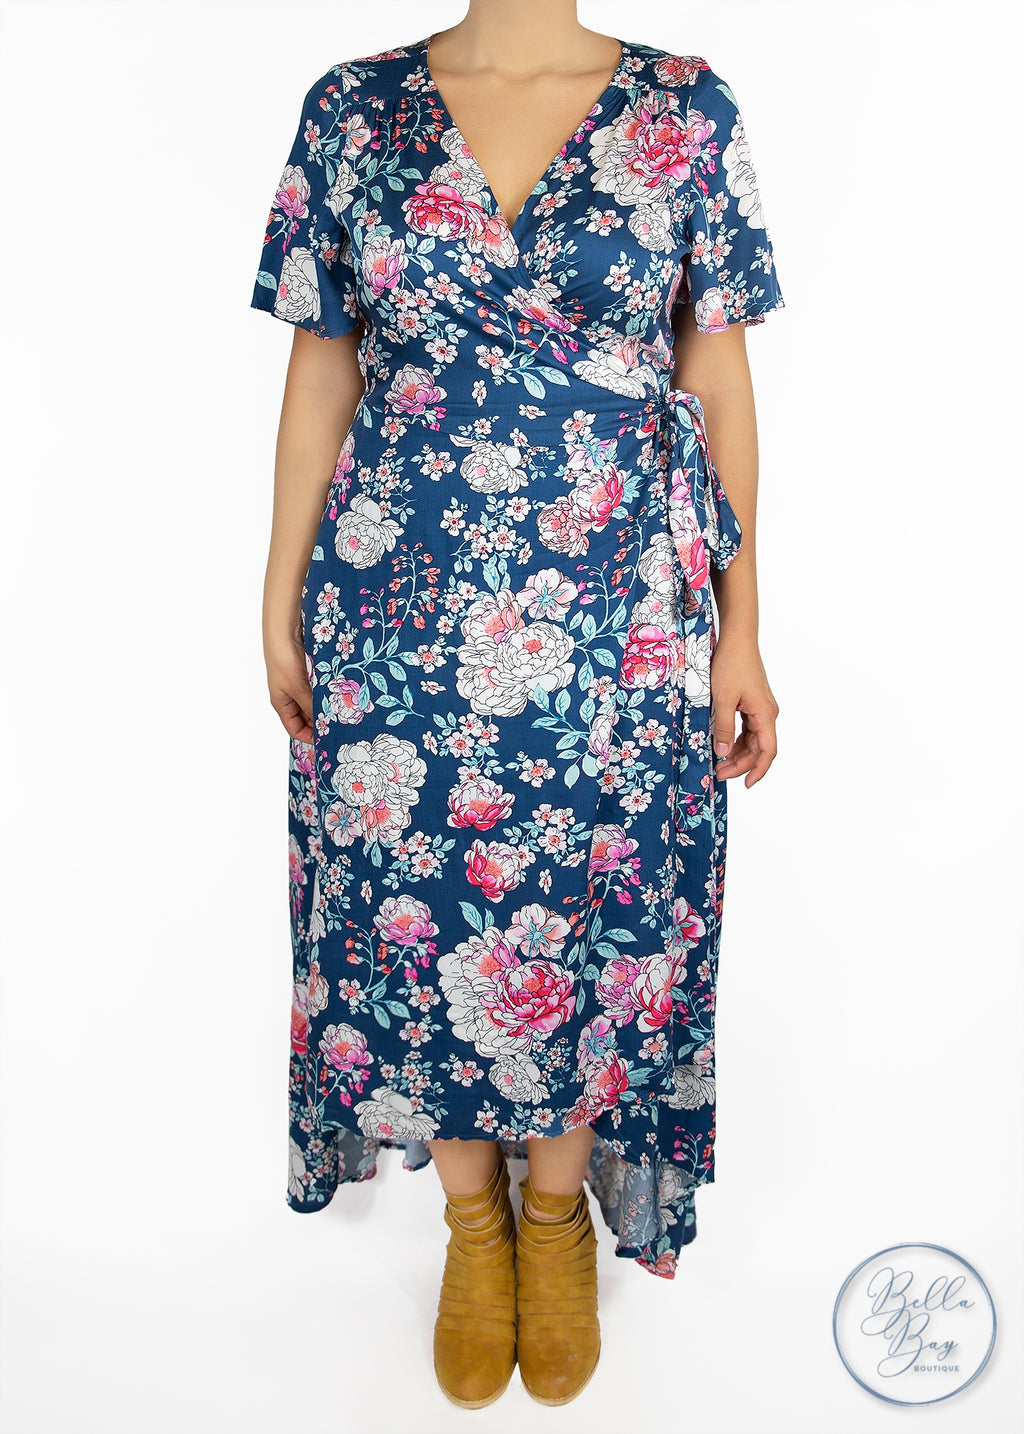 Paisley Raye Primrose Wrap Dress- Blue Floral (S) - Paisley Raye with Bella Bay Boutique, shop now at  https://shopbellabay.com/ or locally in Newport Oregon